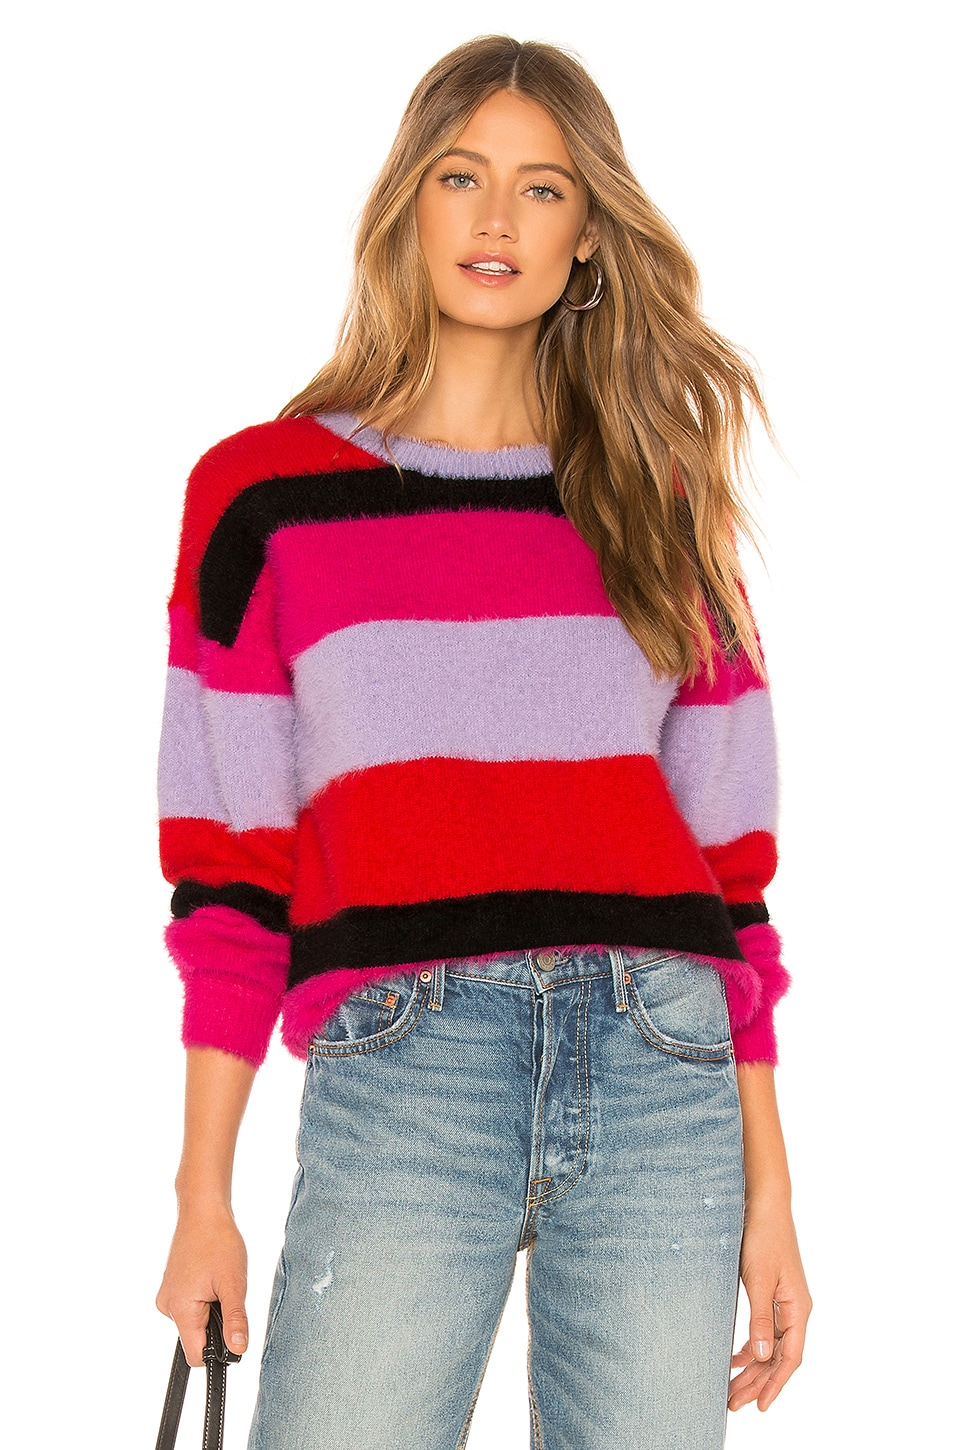 House of Harlow 1960 x REVOLVE Koons Sweater in Red & Purples